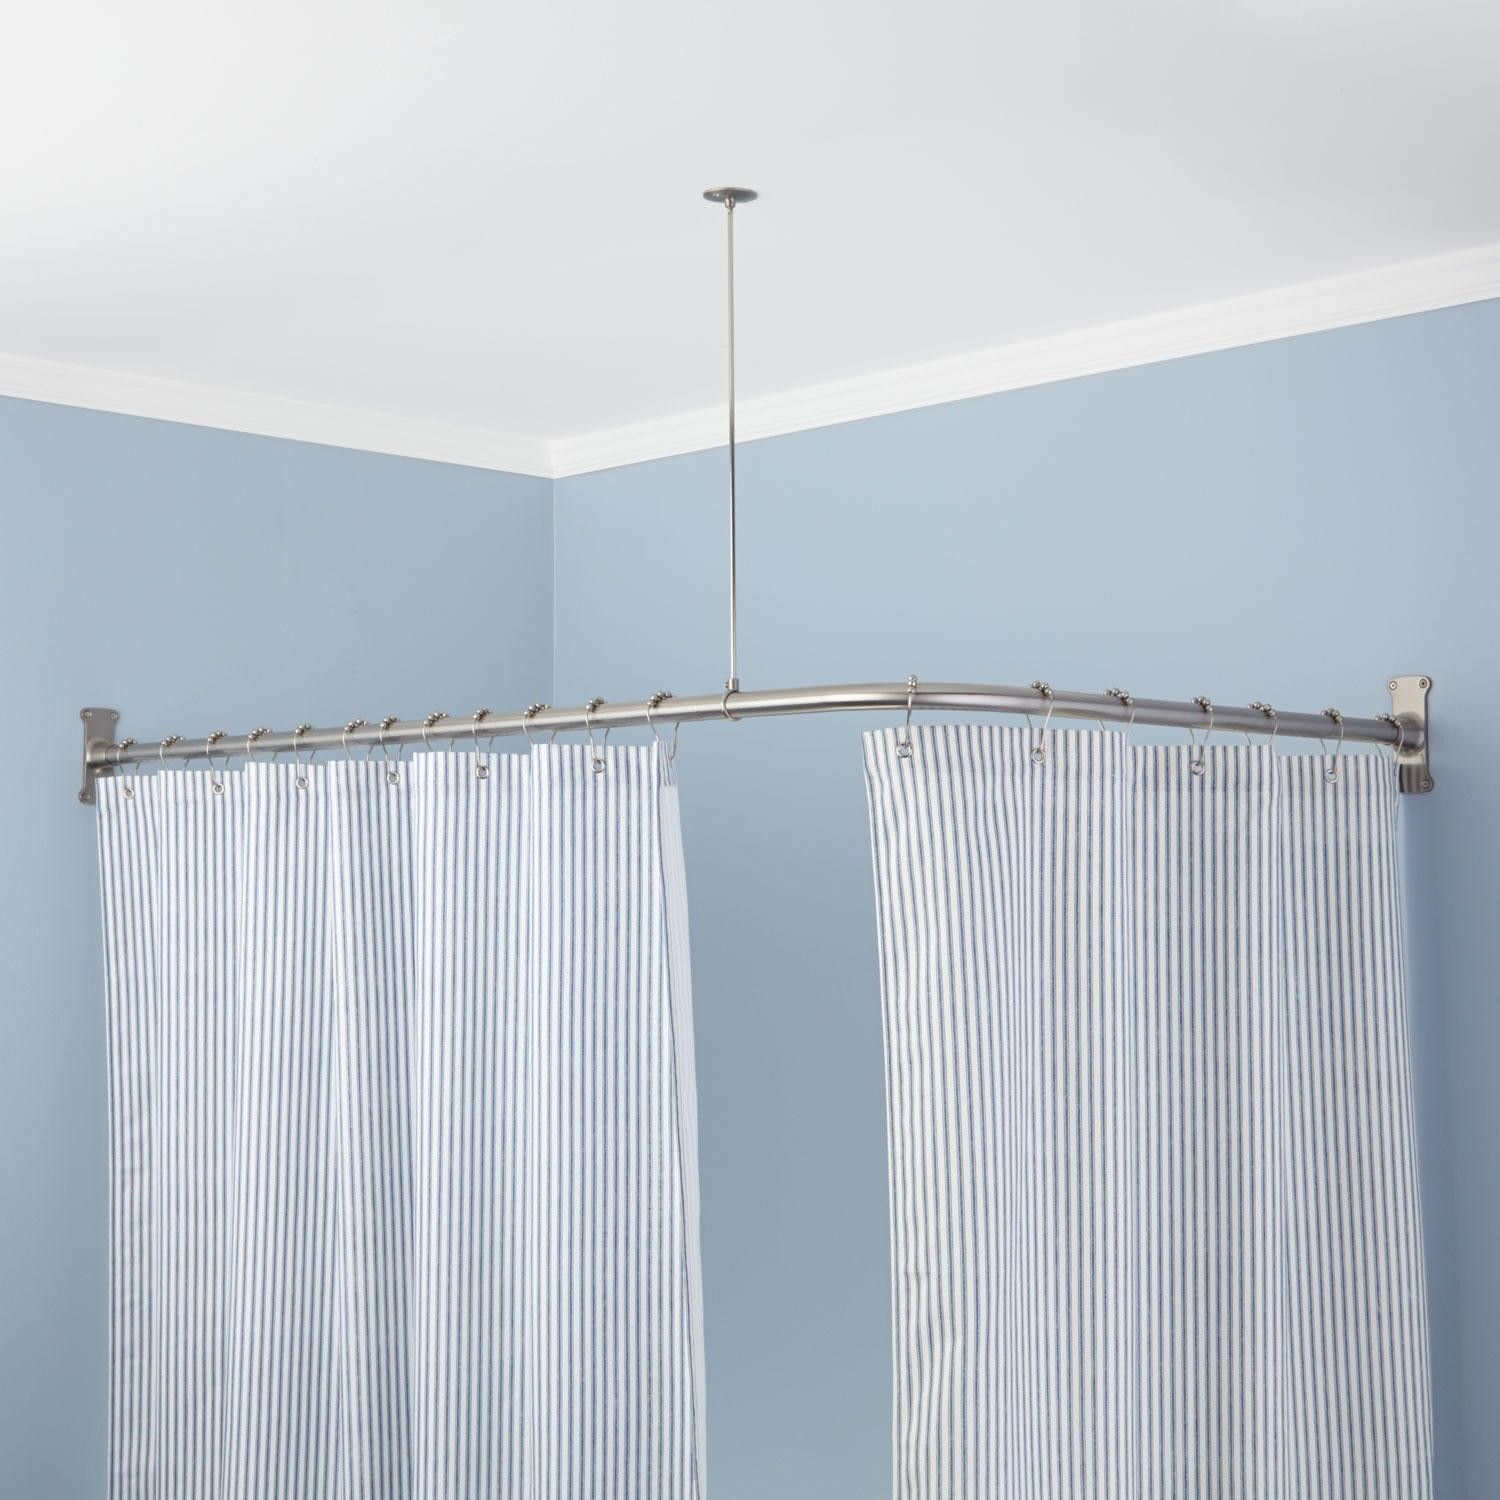 ExtraHeavy Corner Shower Curtain Rod in powder black